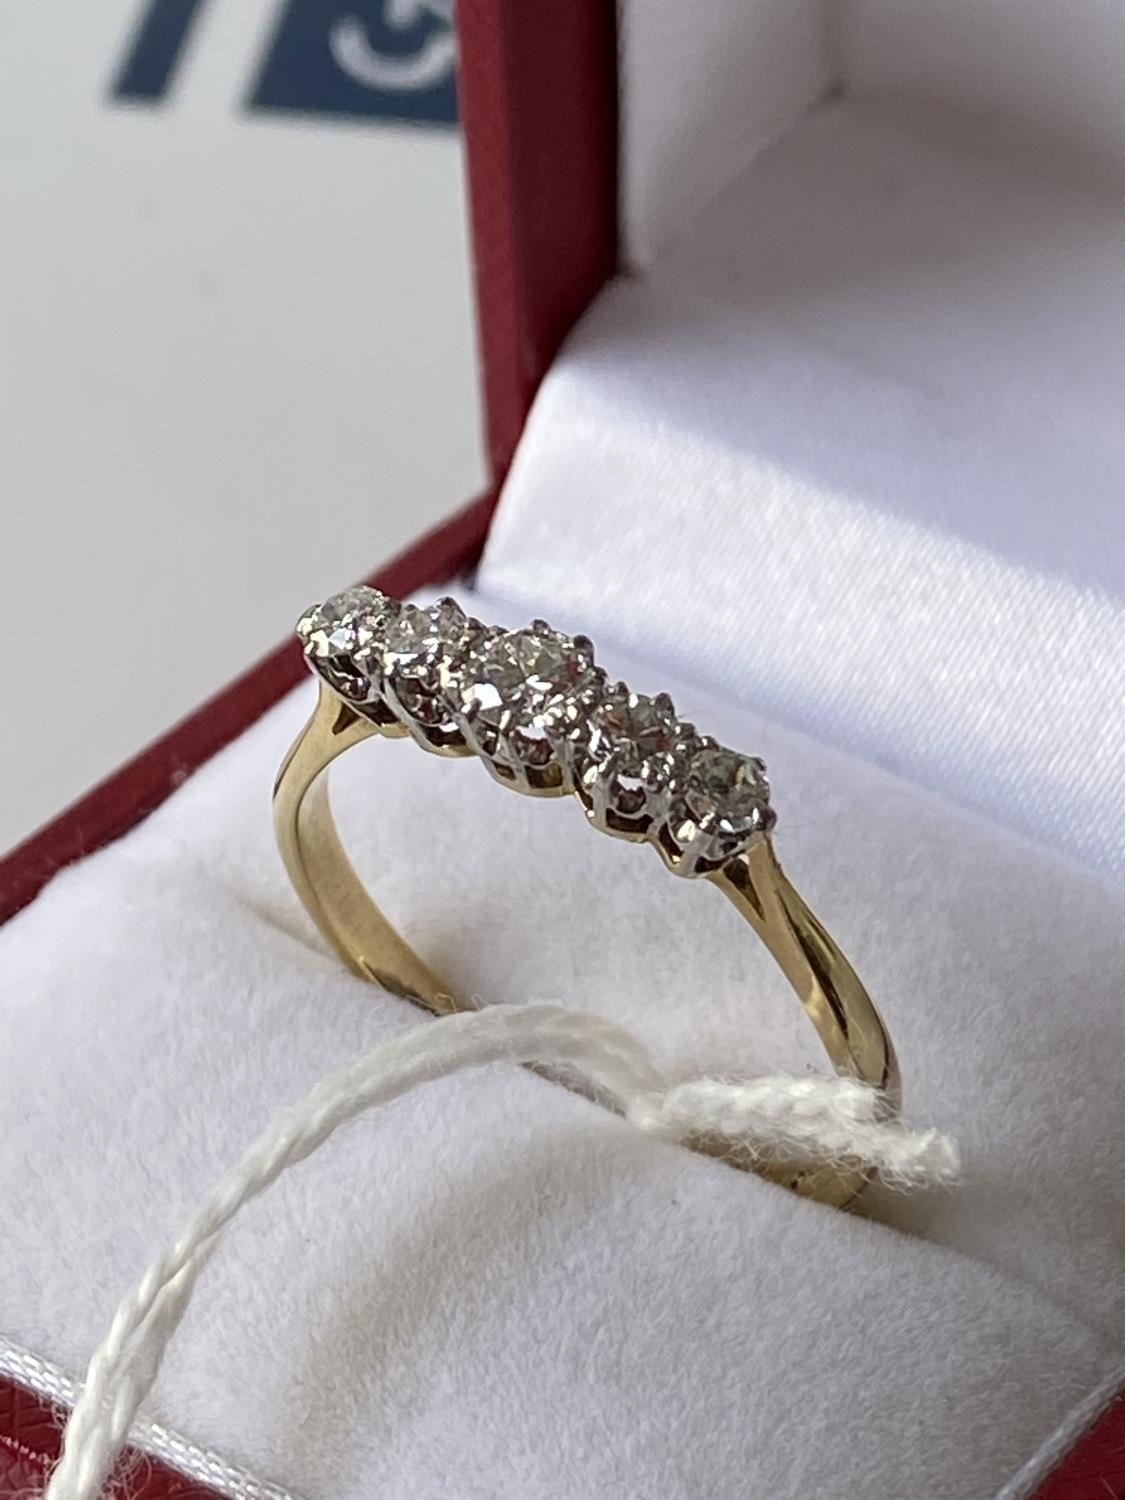 An 18ct gold ladies ring set with 5 brilliant white diamonds [1 inclusion] [size T] [2.73g] - Image 4 of 10